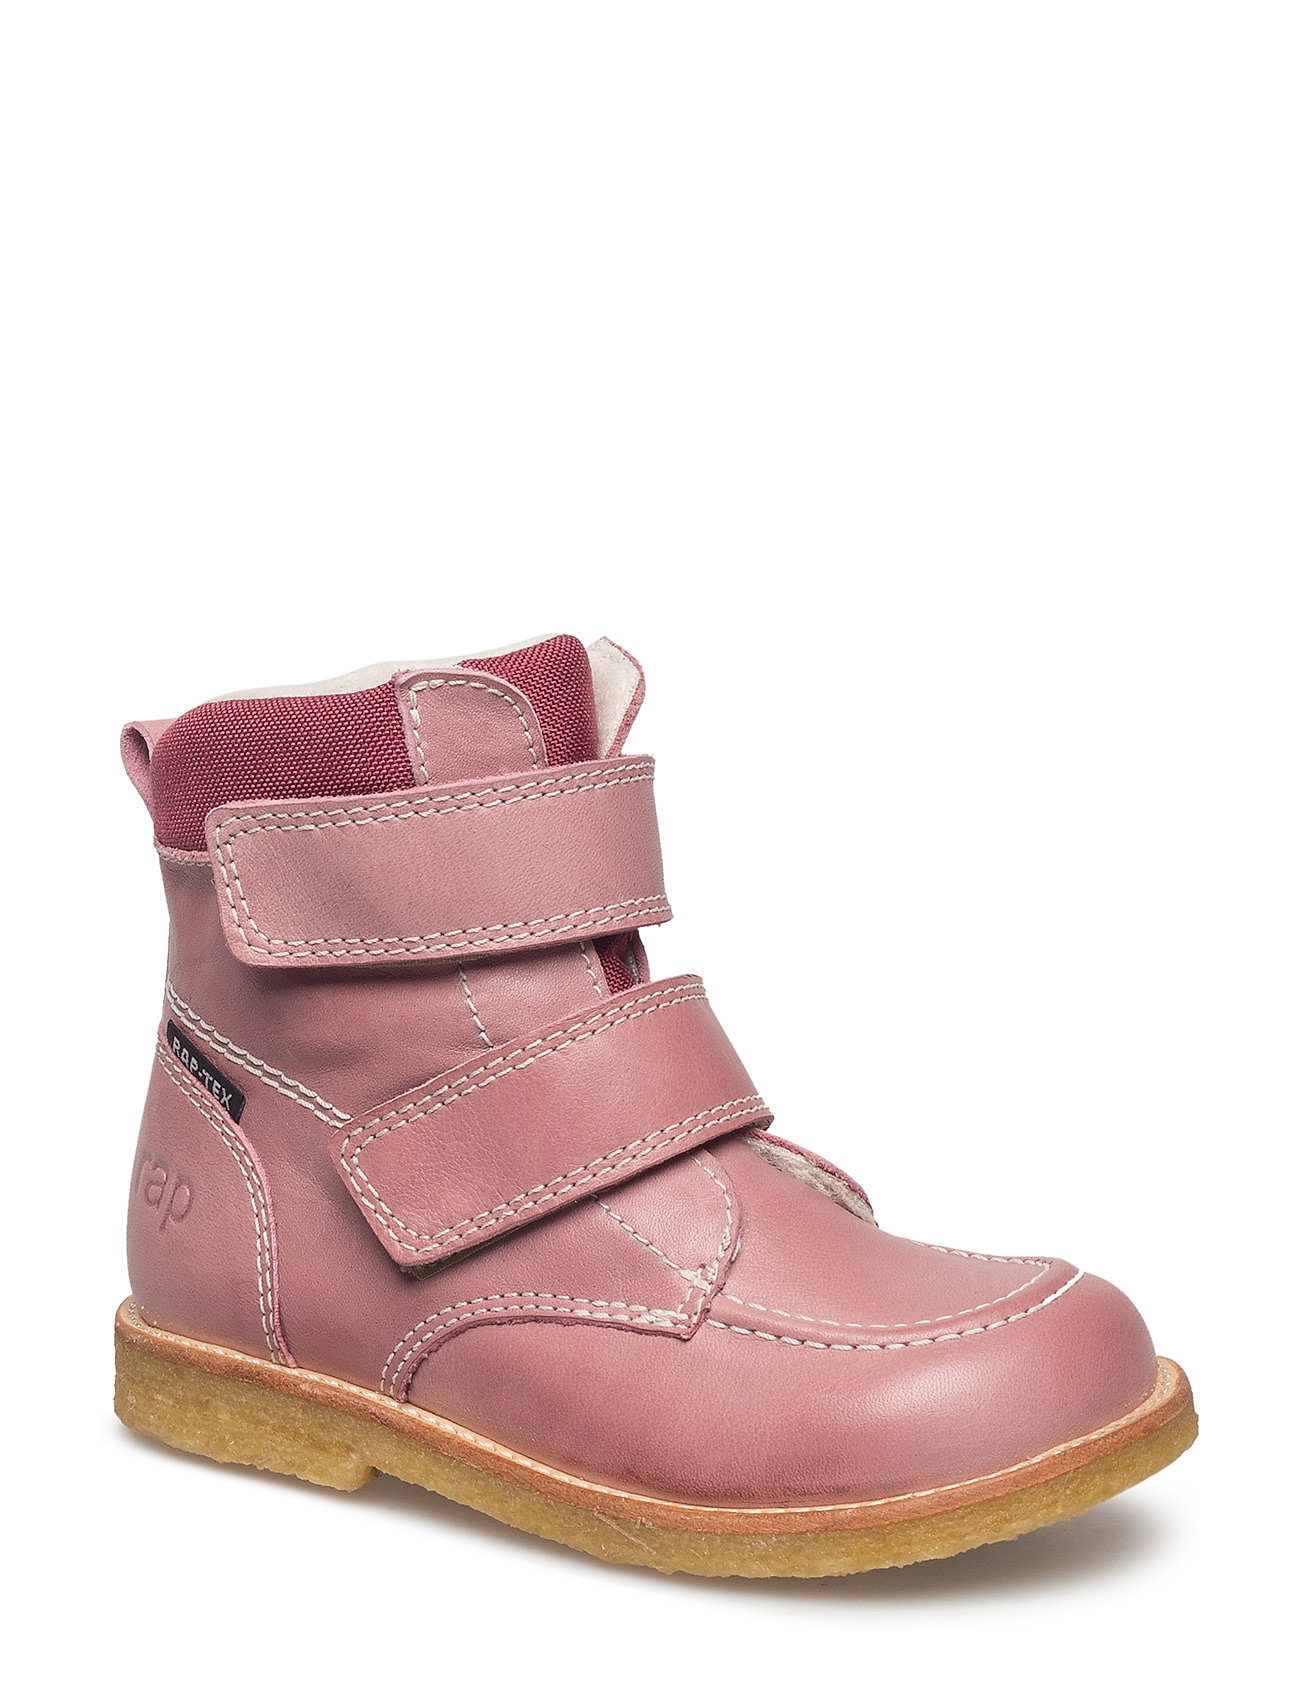 5f0d1cb8516 Arauto RAP Ecological Hand Made Water Proof Low Boot (03-pink ...